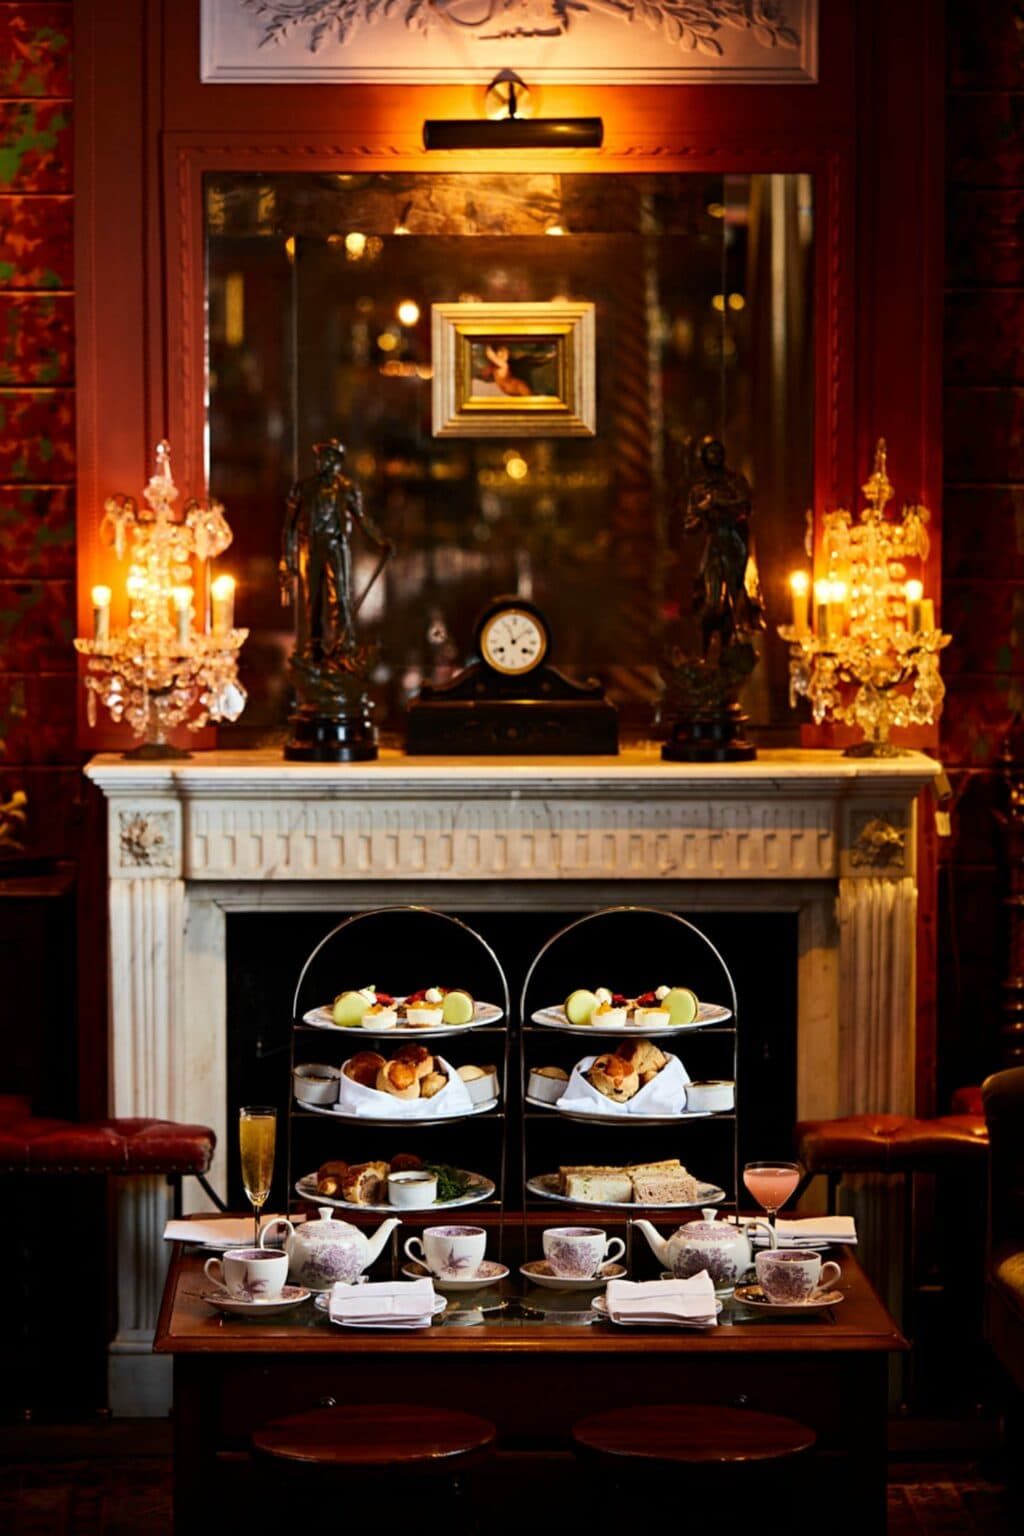 The Fireplace And Afternoon Tea At The Zetter Townhouse Clerkenwell